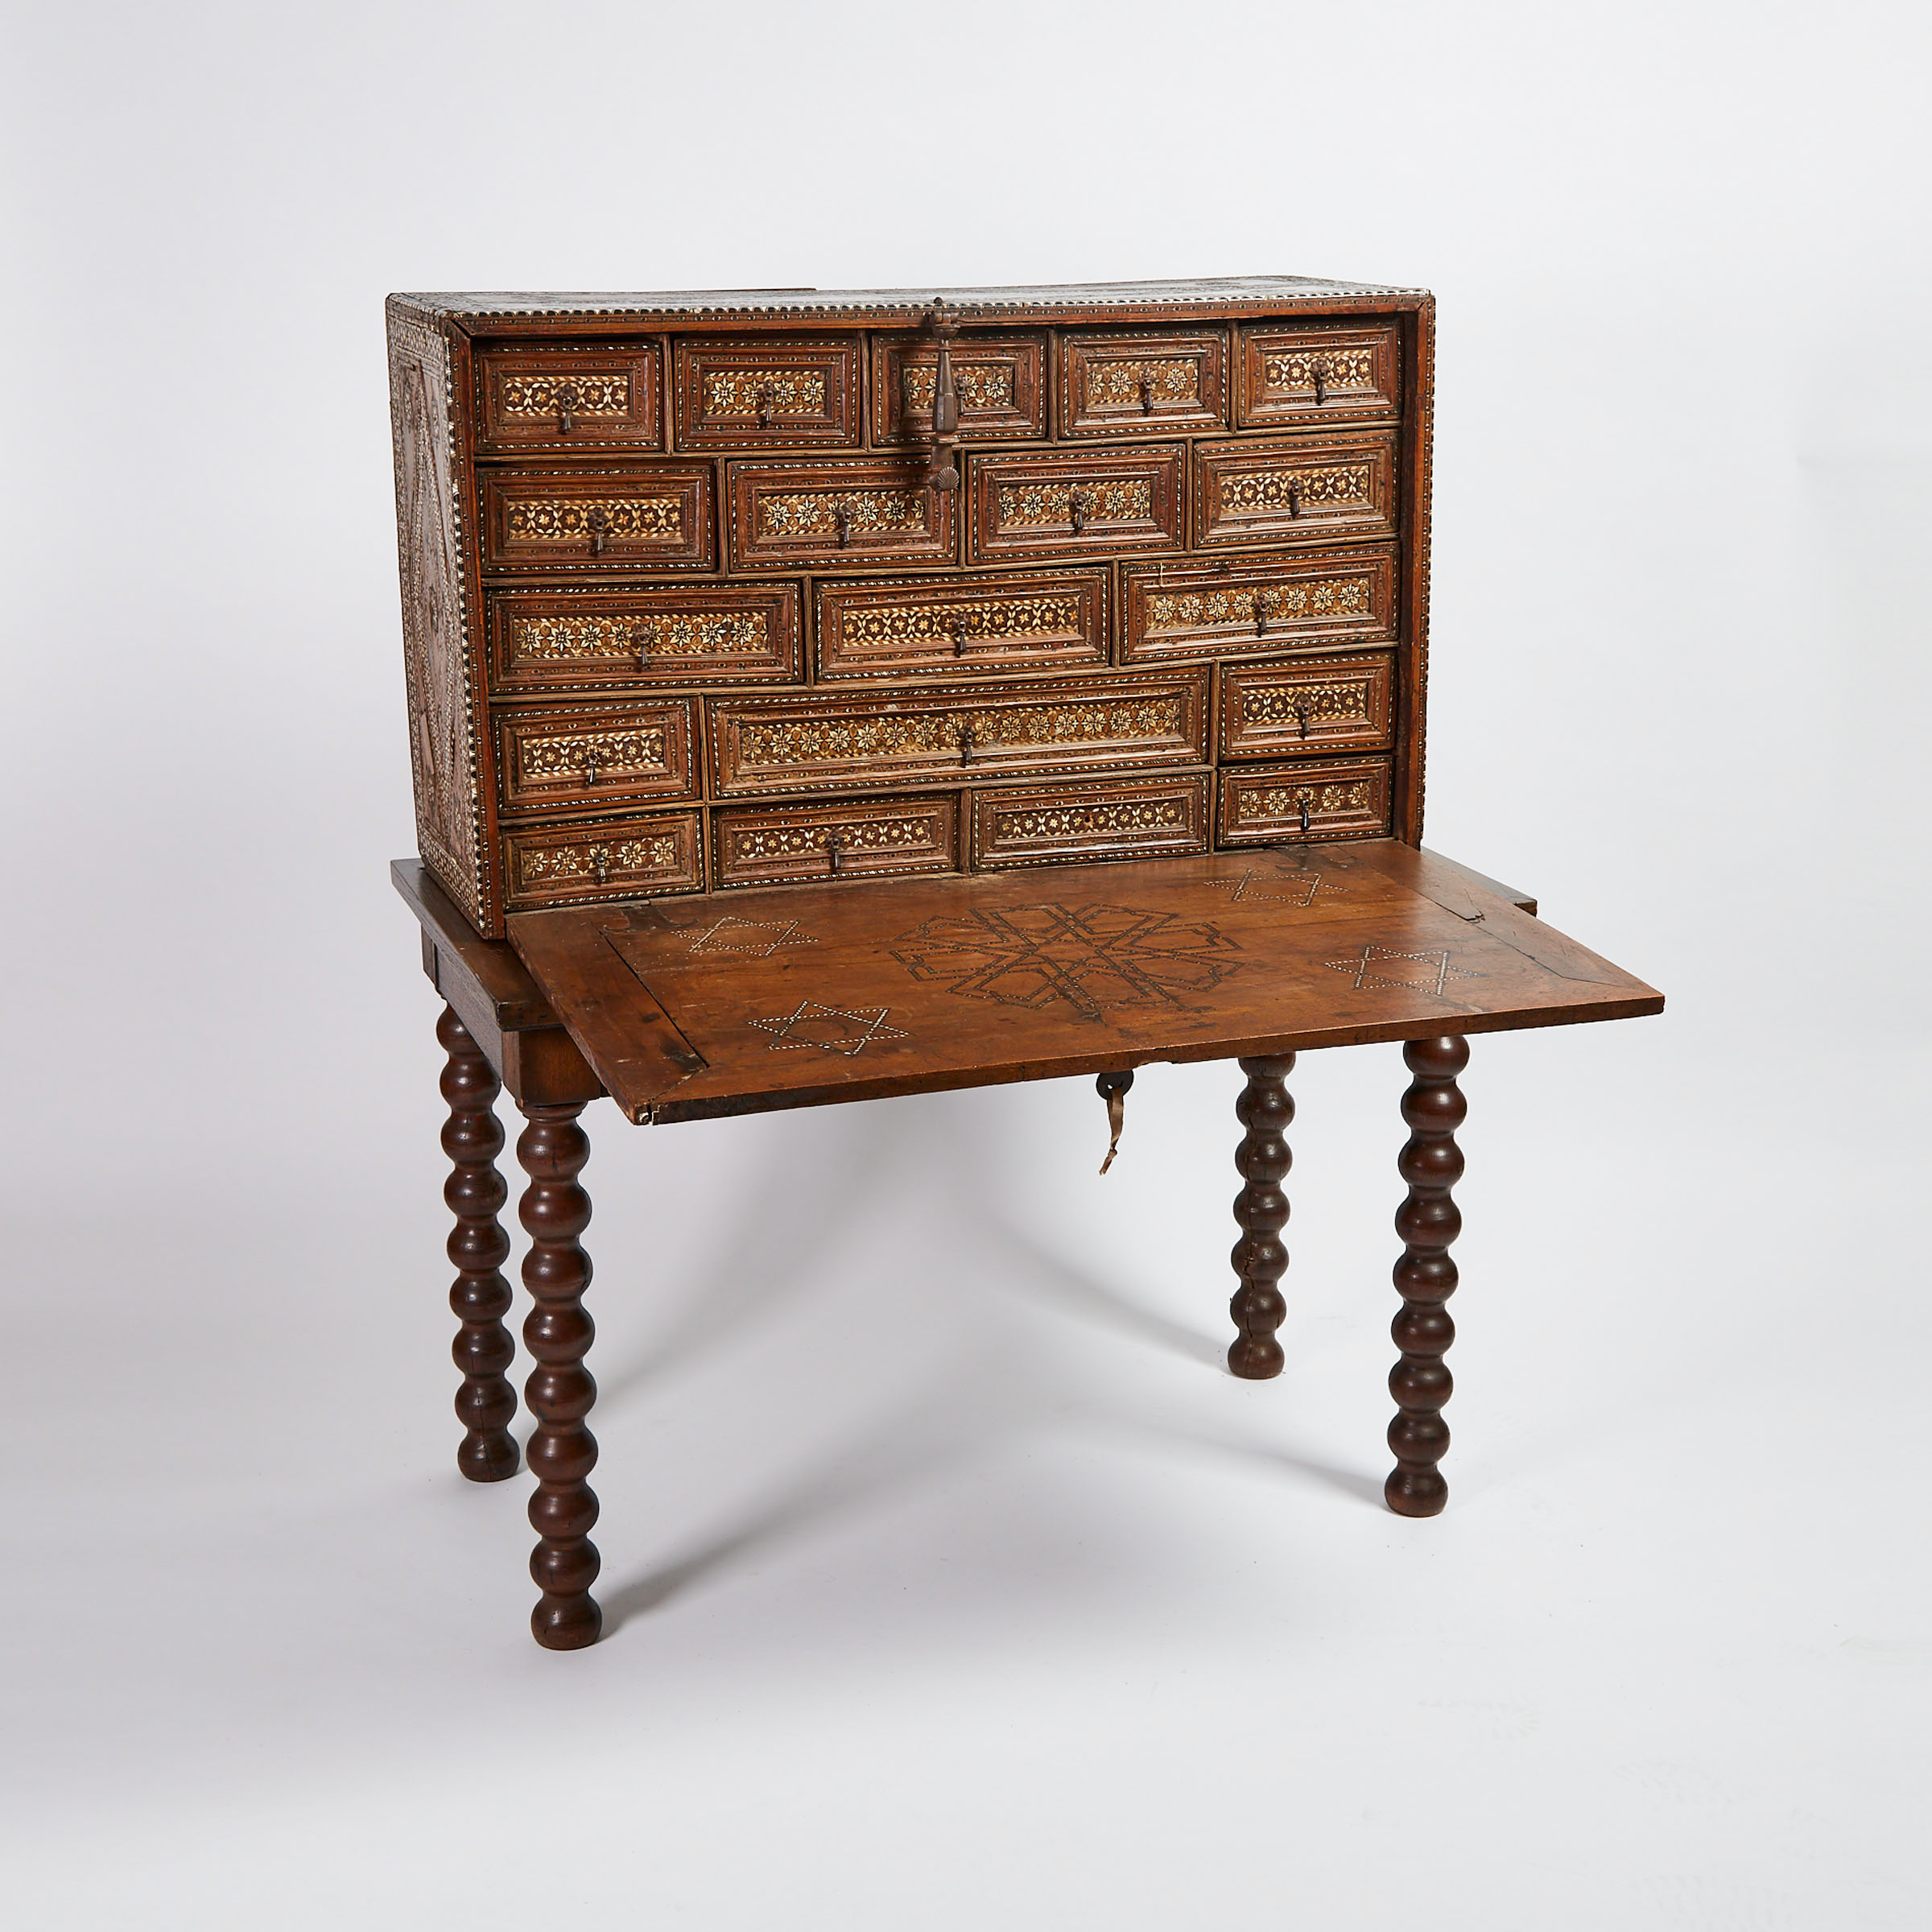 Spanish Walnut Vargueño Desk on Stand, 17th century and later